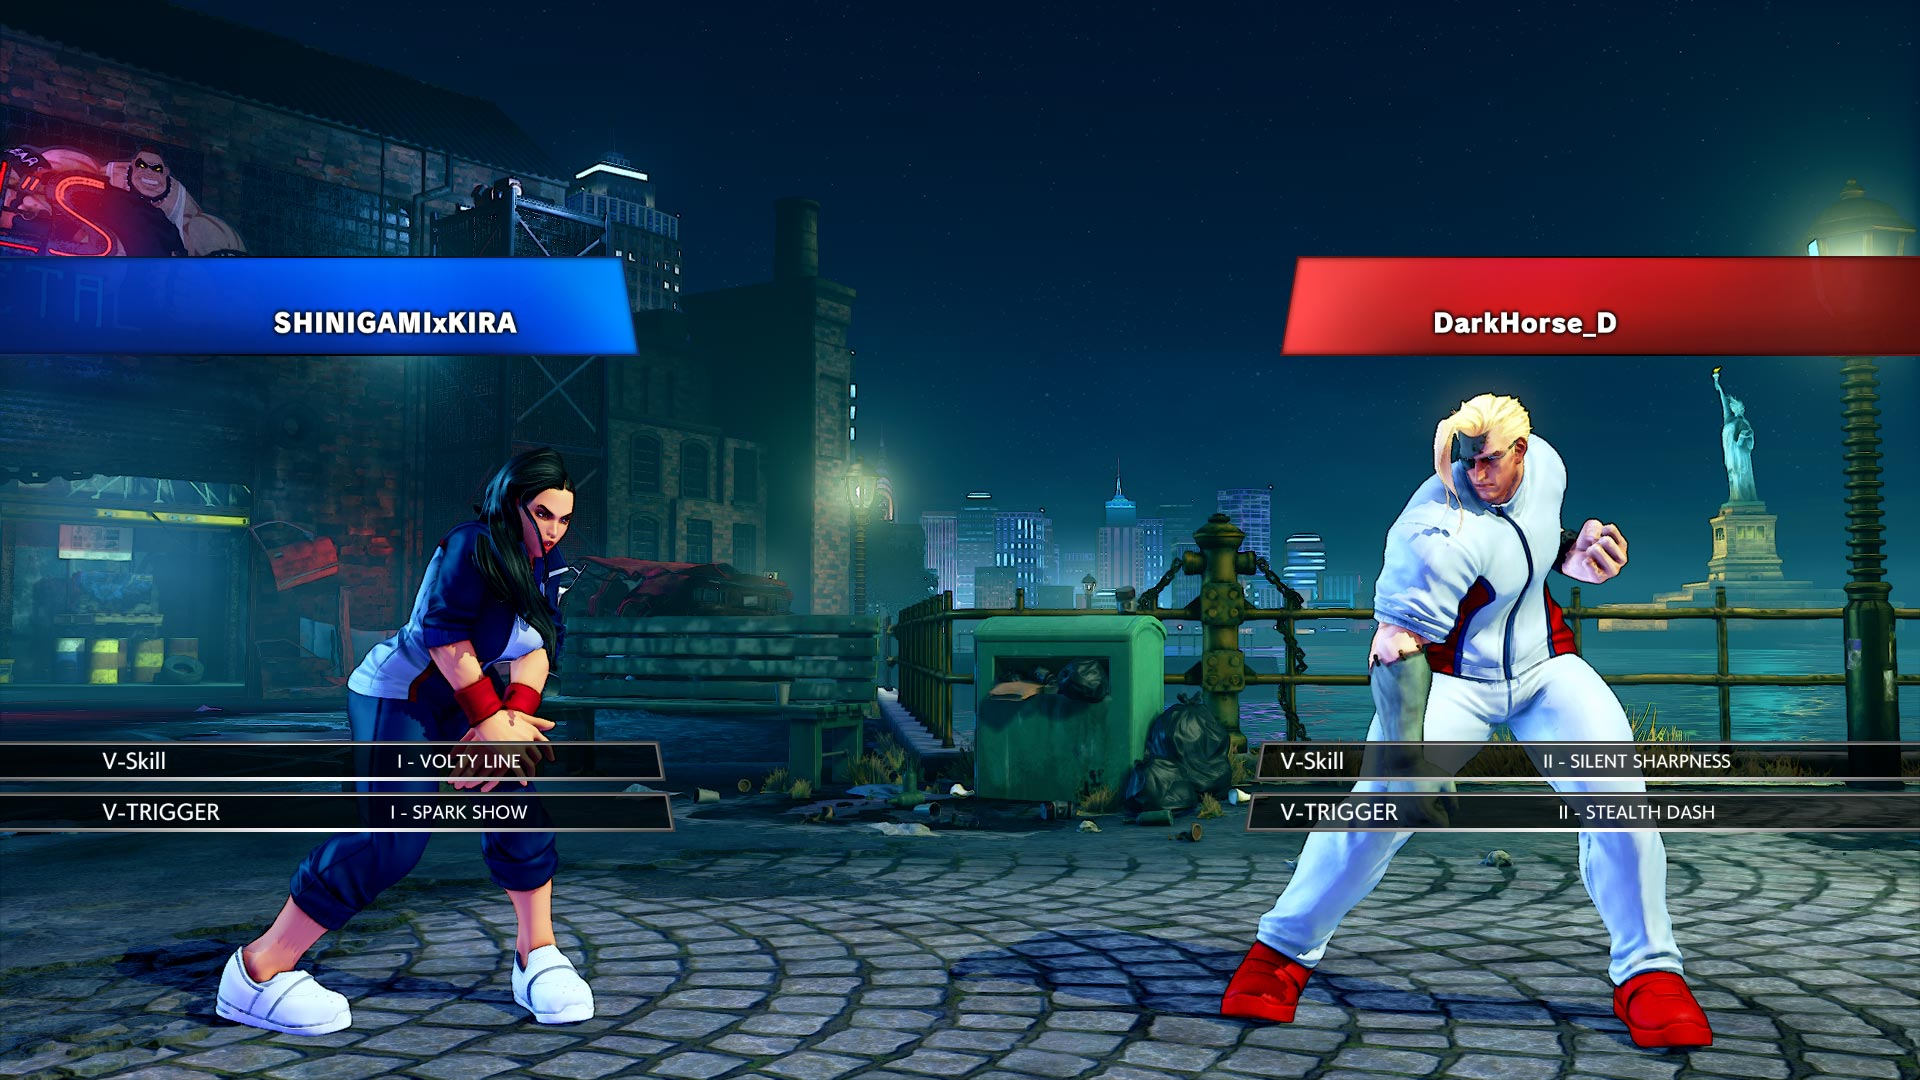 SF5 online beta 4 out of 6 image gallery